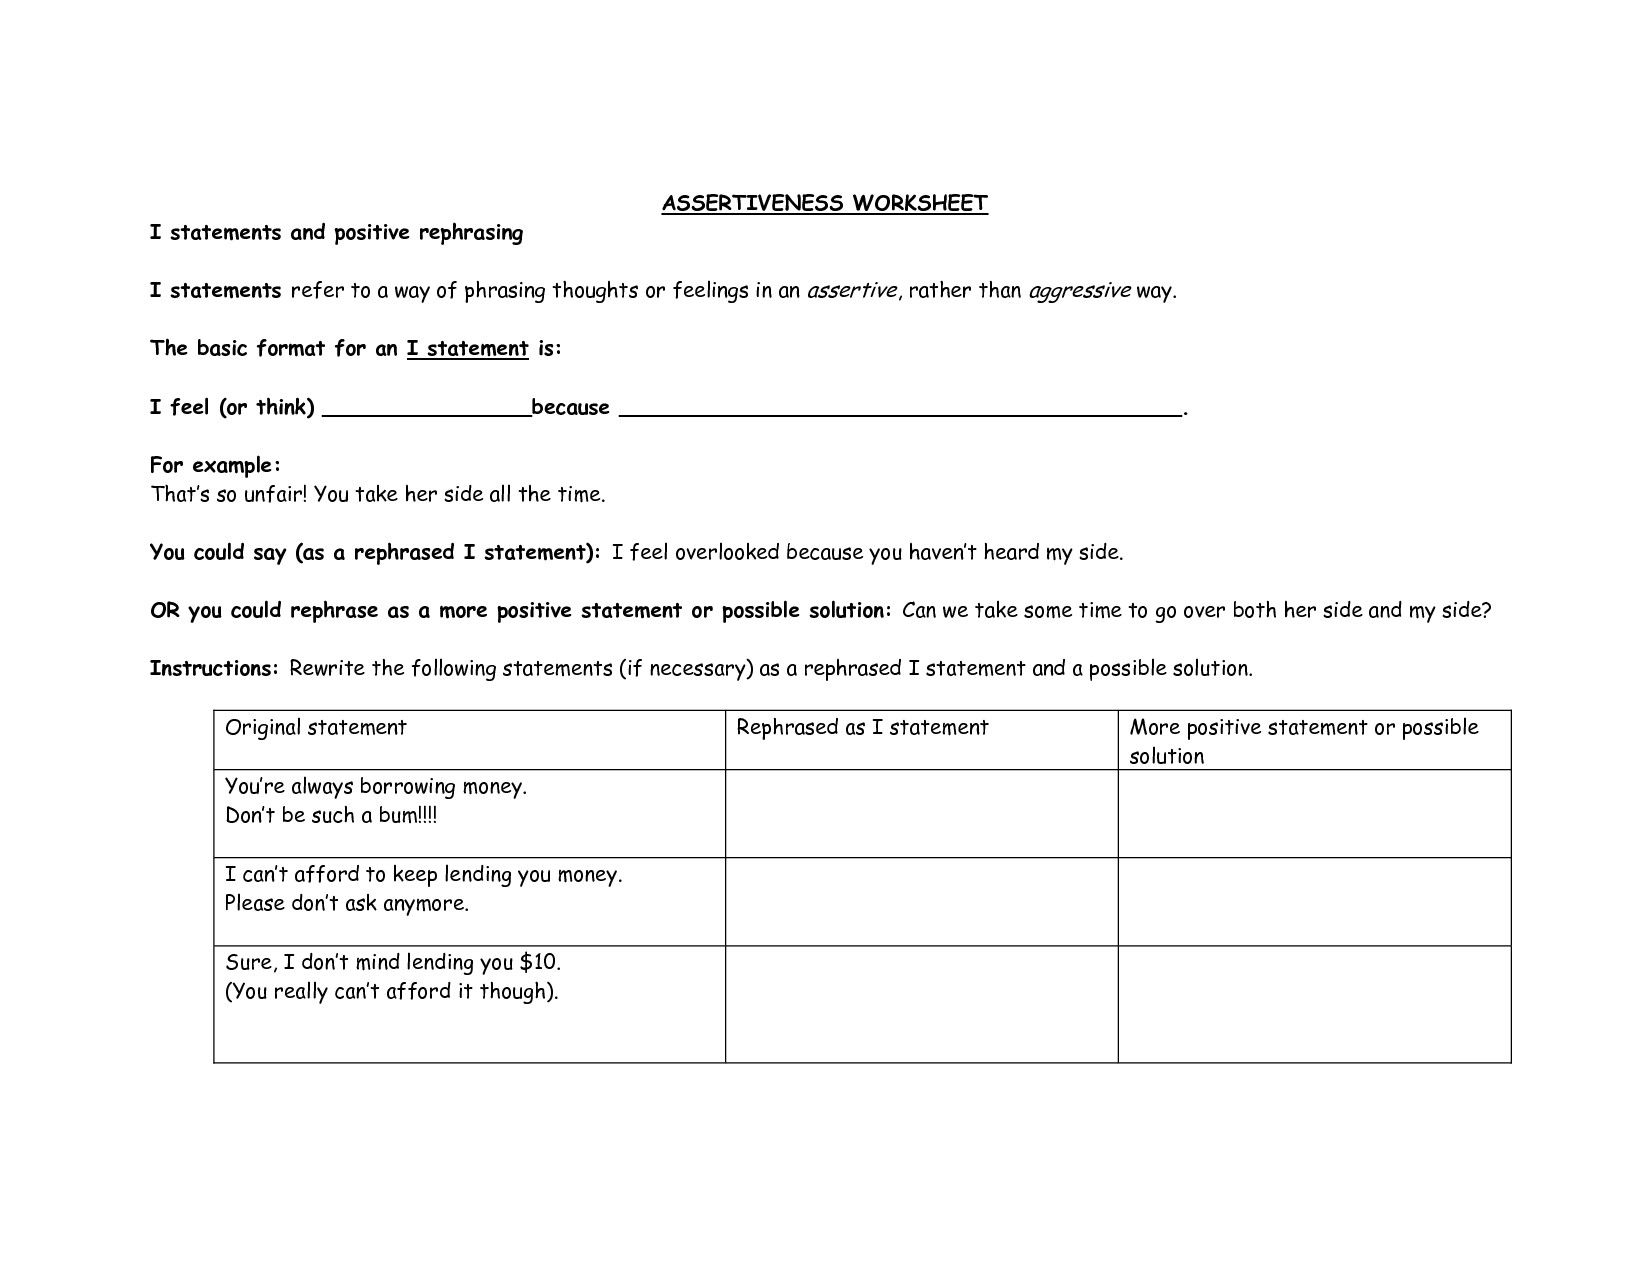 Classified Healthy Relationships Worksheets